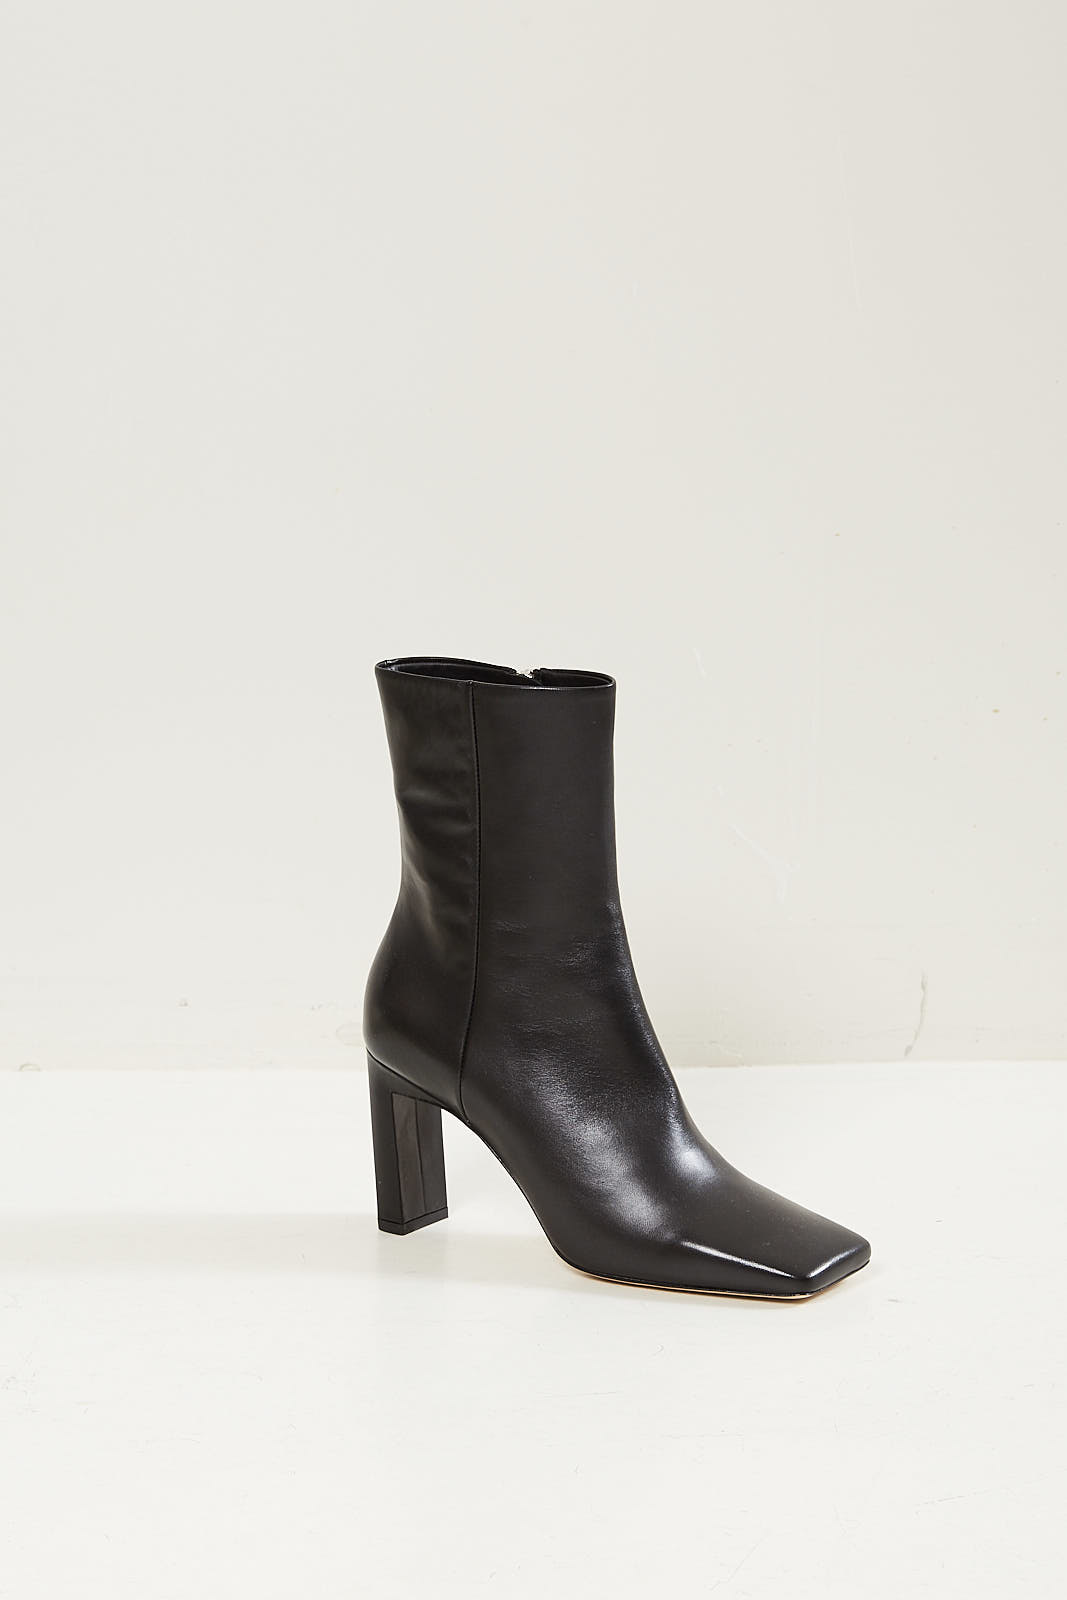 Wandler Isa short leather boot black